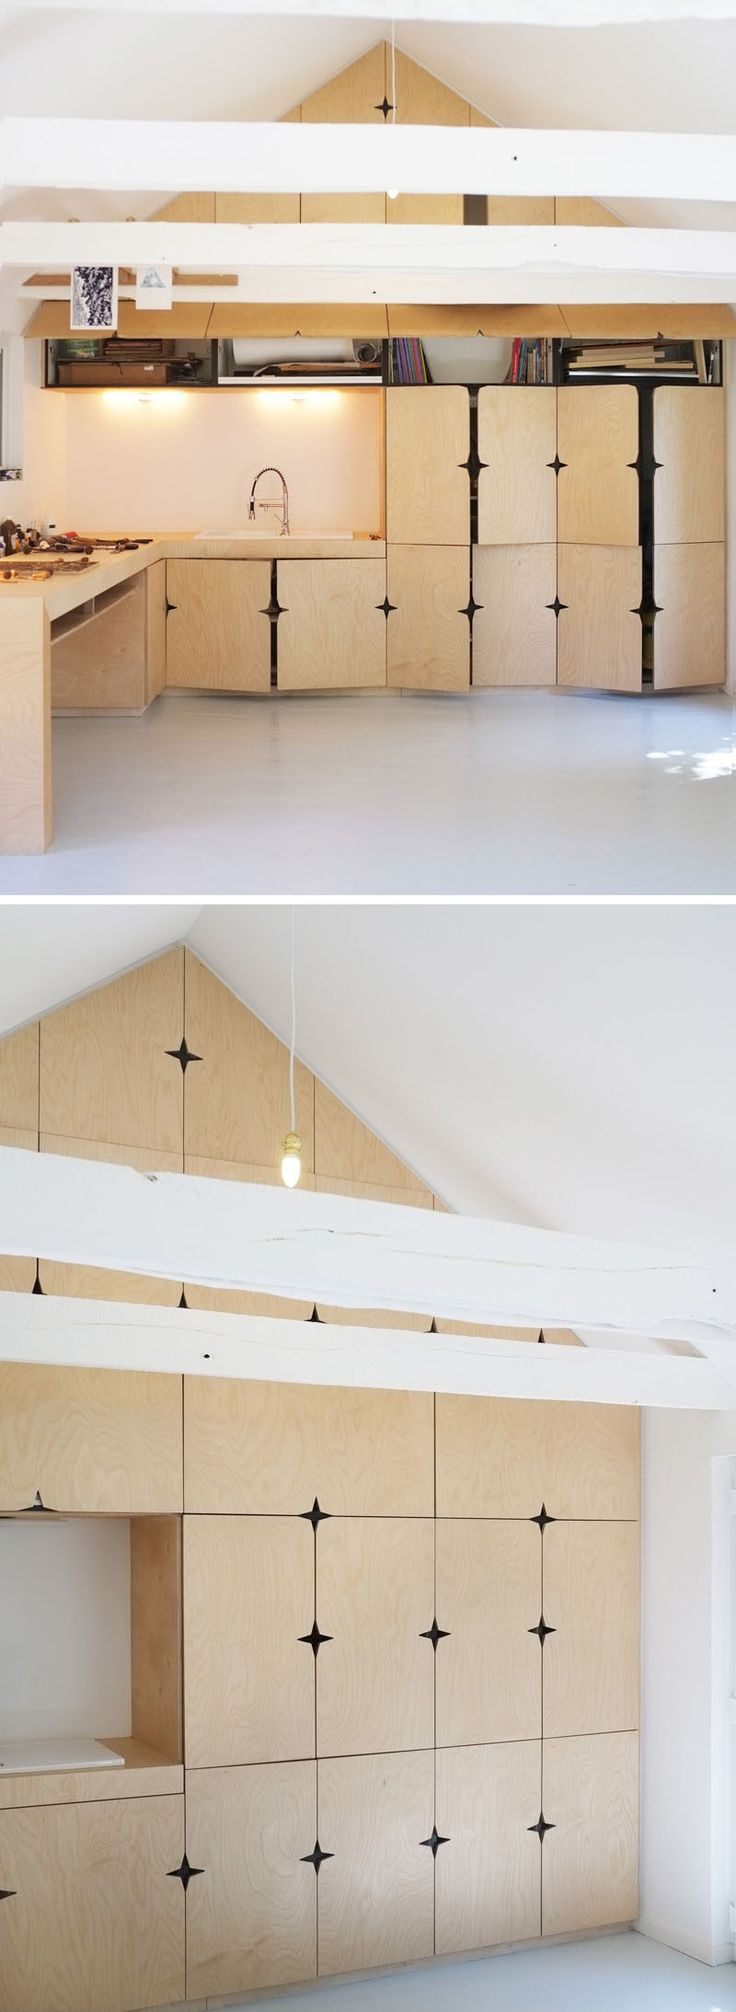 5 Ideas For Unconventional Cabinet Door Designs // These doors have cut outs, rather than door pulls, designed so that when the doors are closed stars appear where they meet.